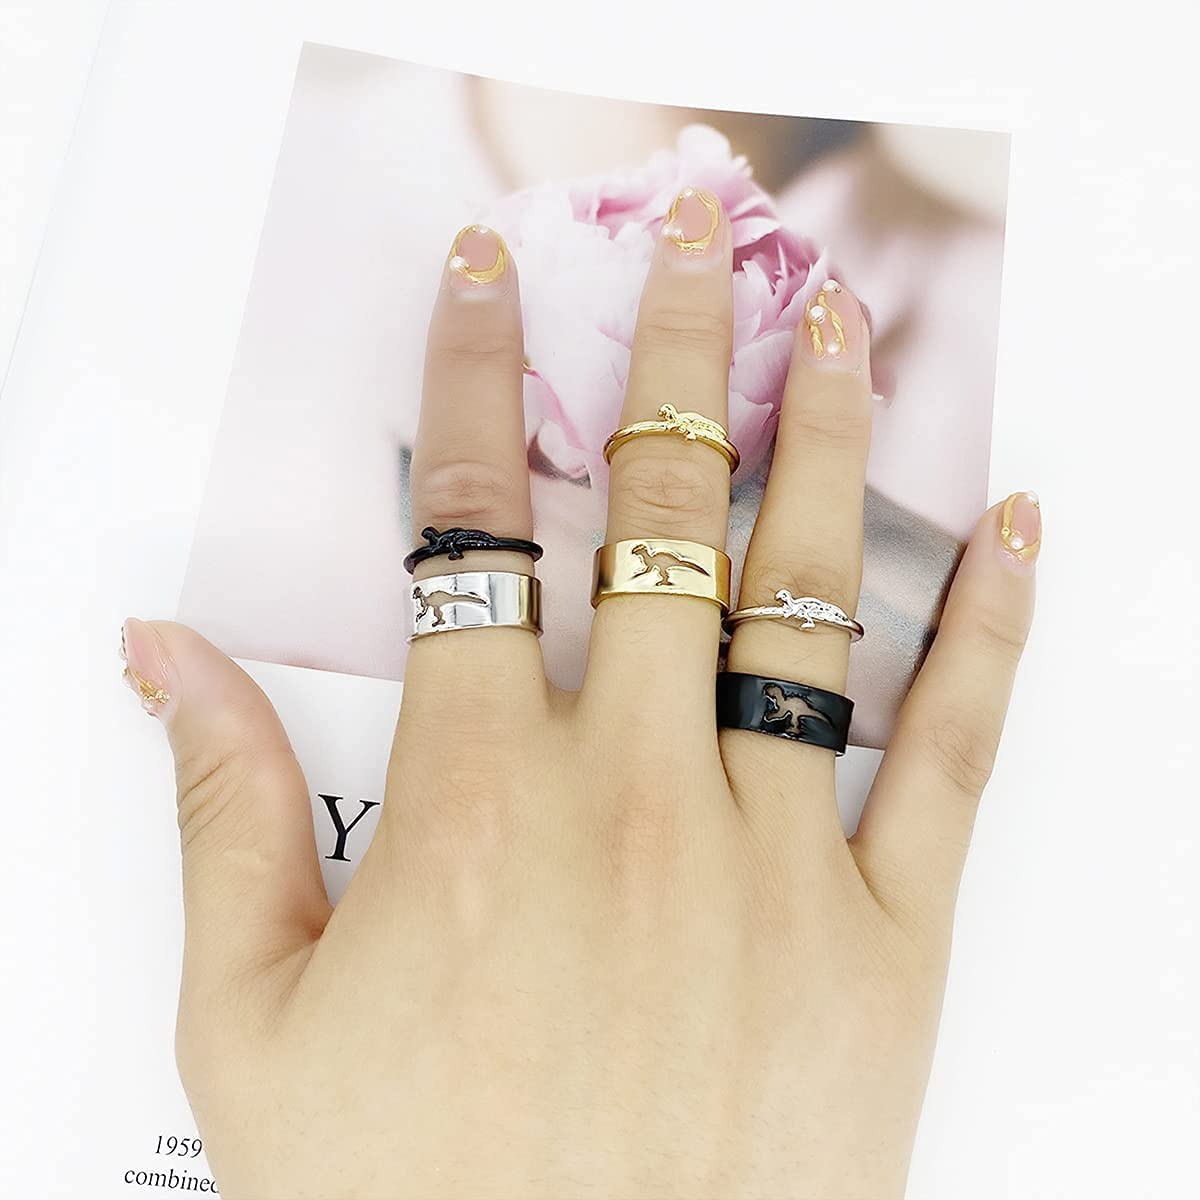 Matching Hollow Dinosaur Couple Open Rings Set,4Pcs Animal Dinosaur Knuckle Stackable Finger Rings Band Sets for Him Her Wedding Jewelry